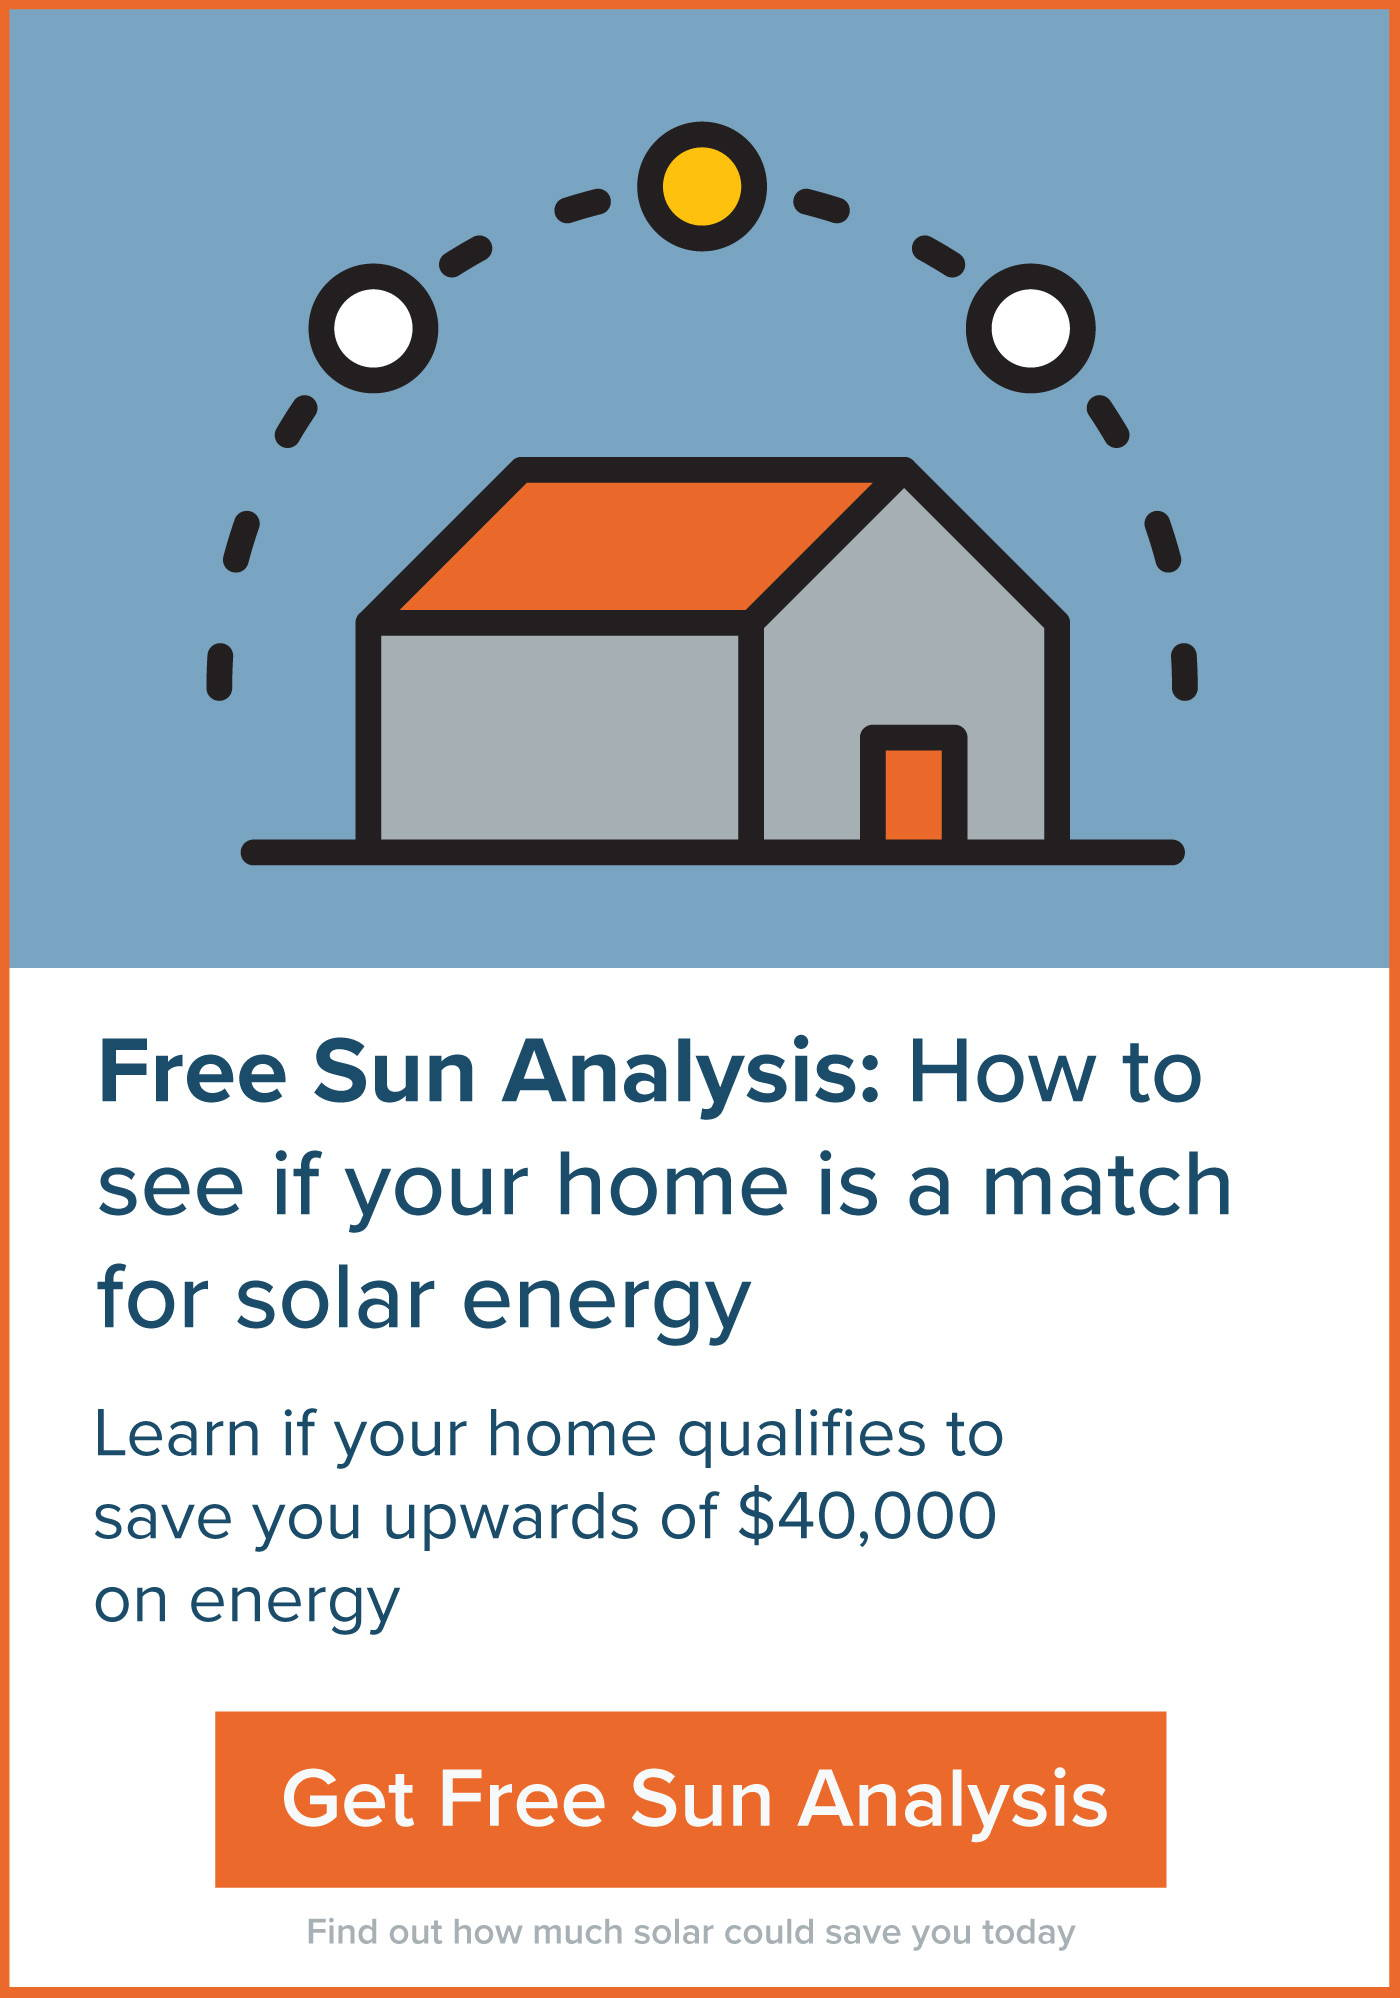 Image of a Free Sun Analysis offer